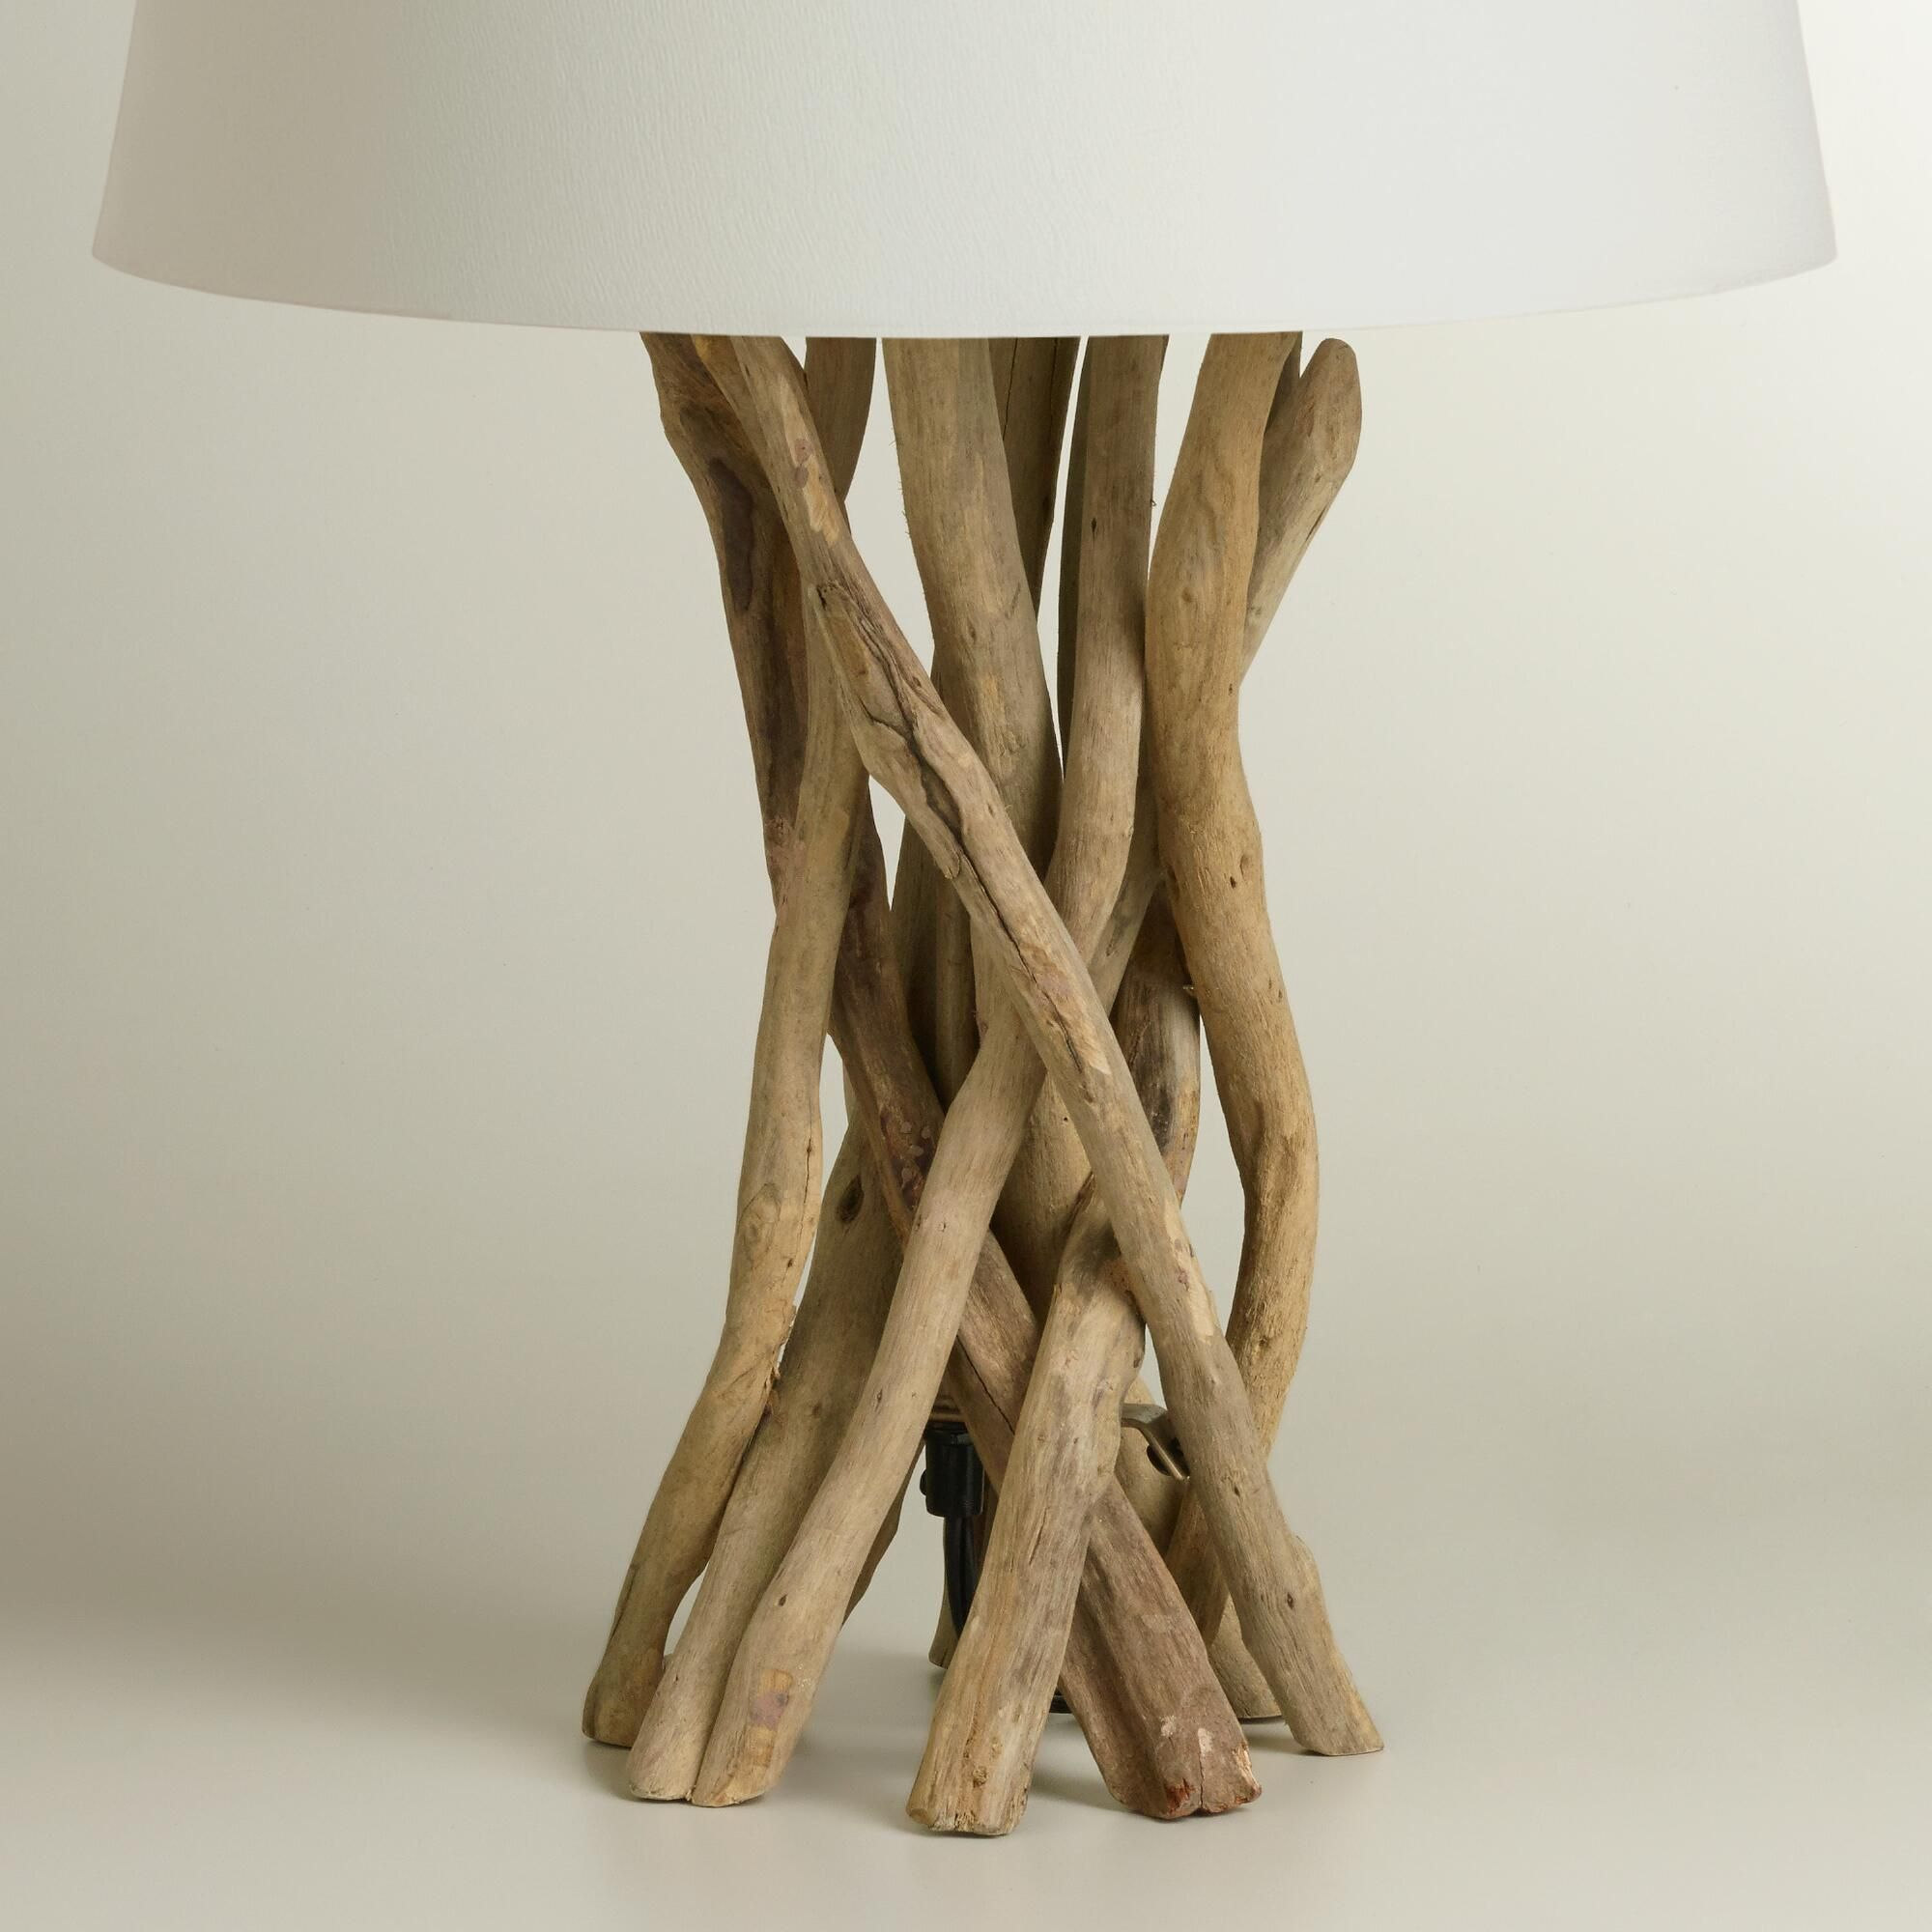 Our exclusive Driftwood Table Lamp Base is intricately hand